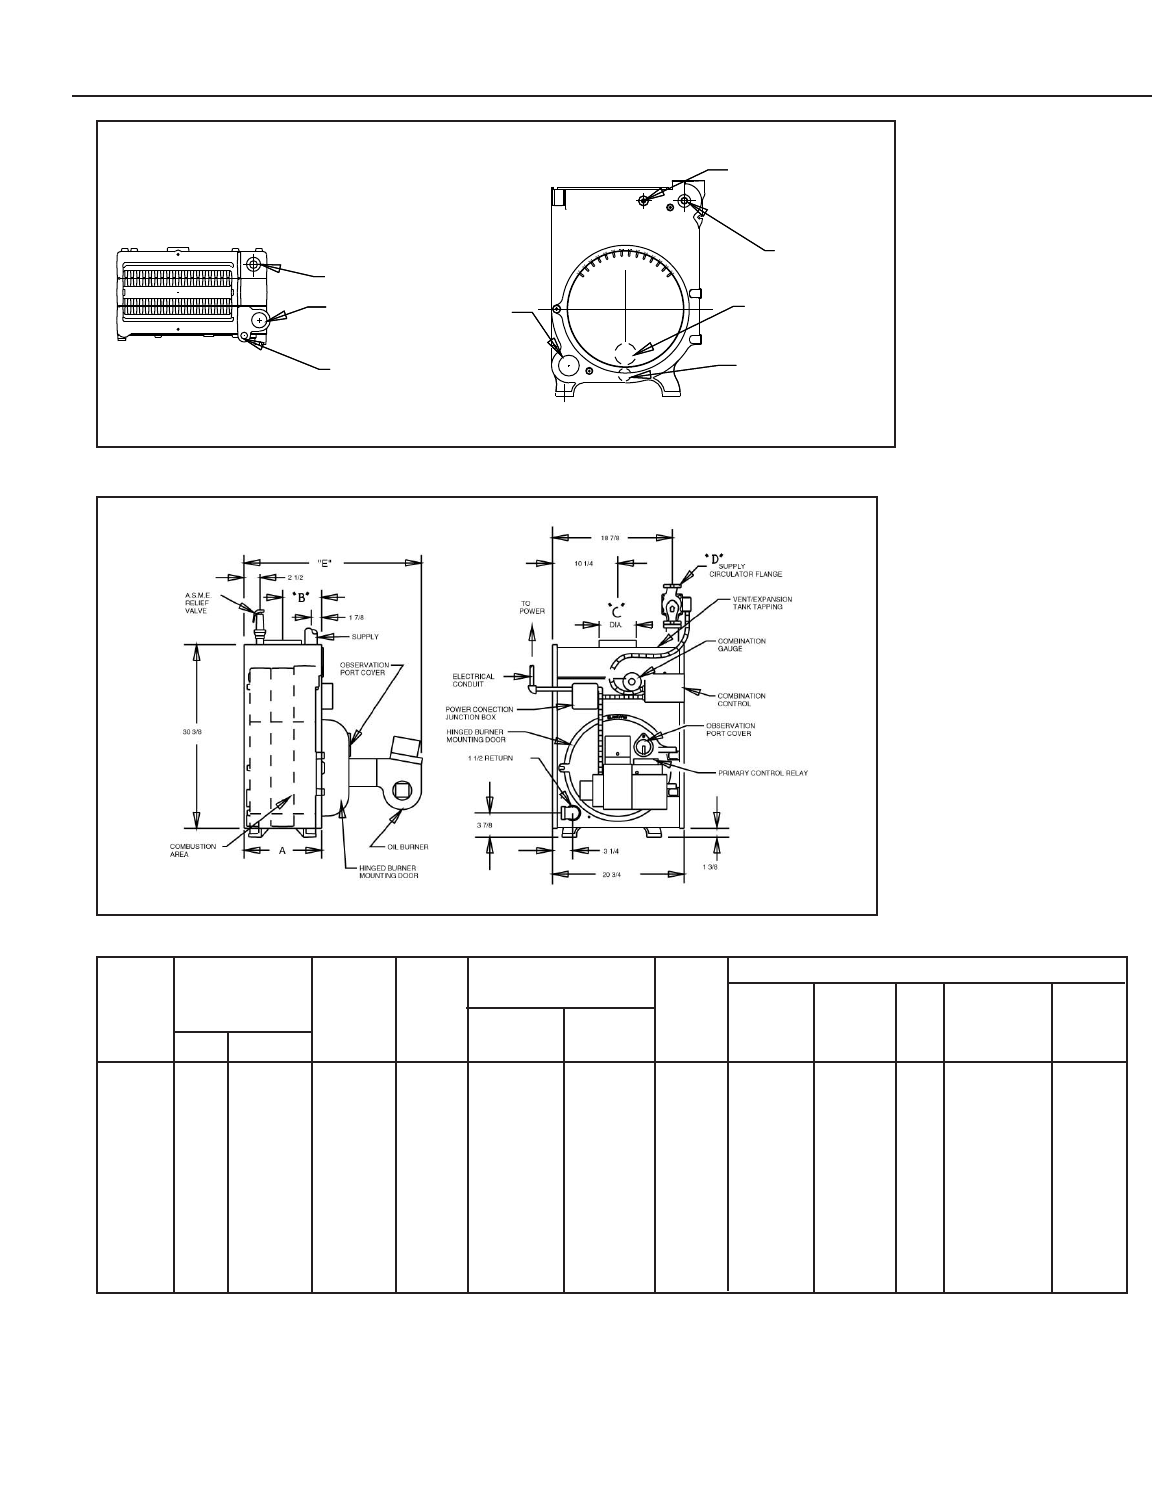 Slant Fin Xl 2000 Users Manual Wh40 Wiring Diagram